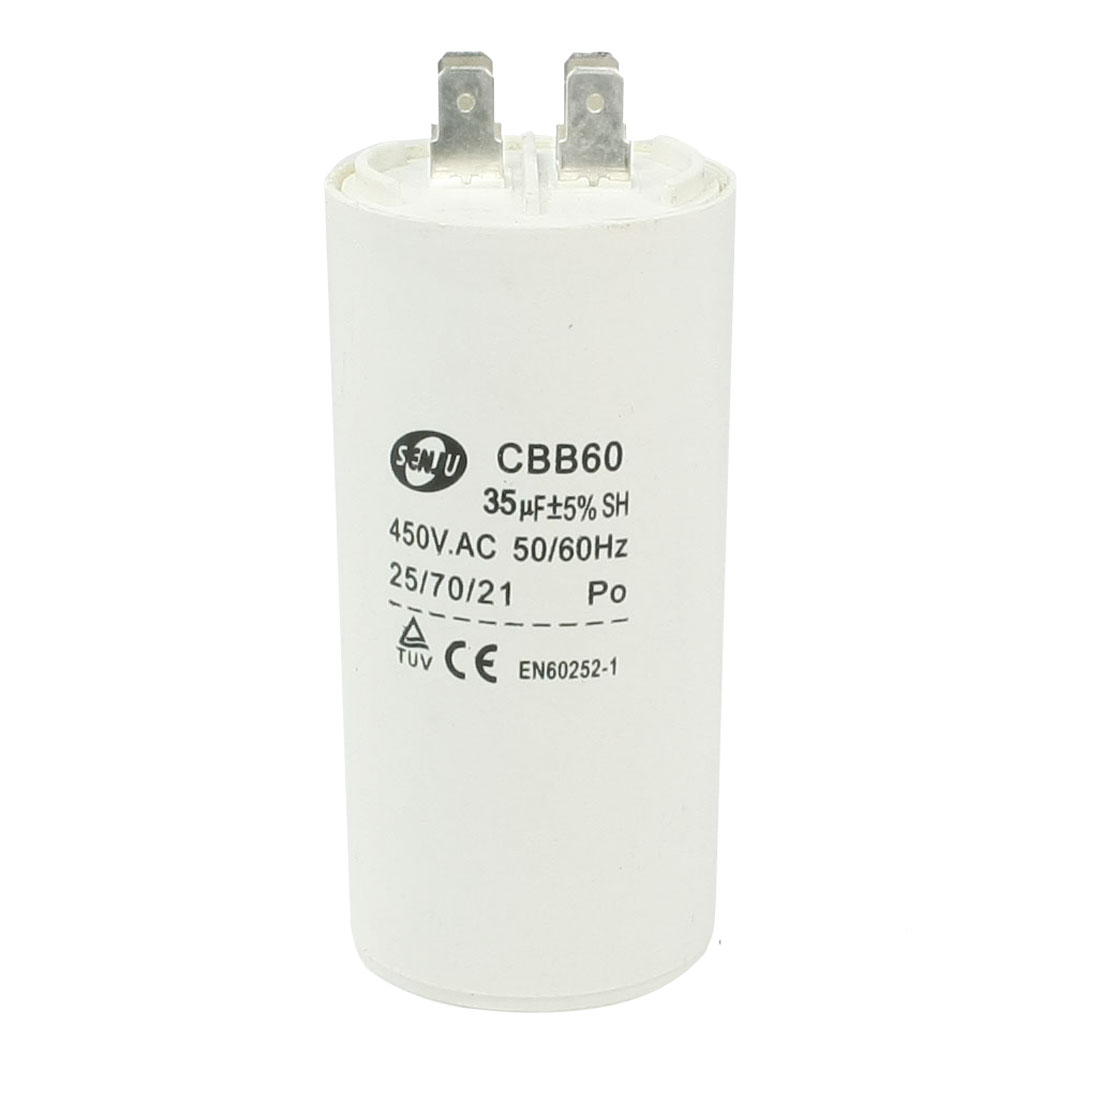 Washing Machine Non Polar Motor Capacitor White 35uF AC 450V